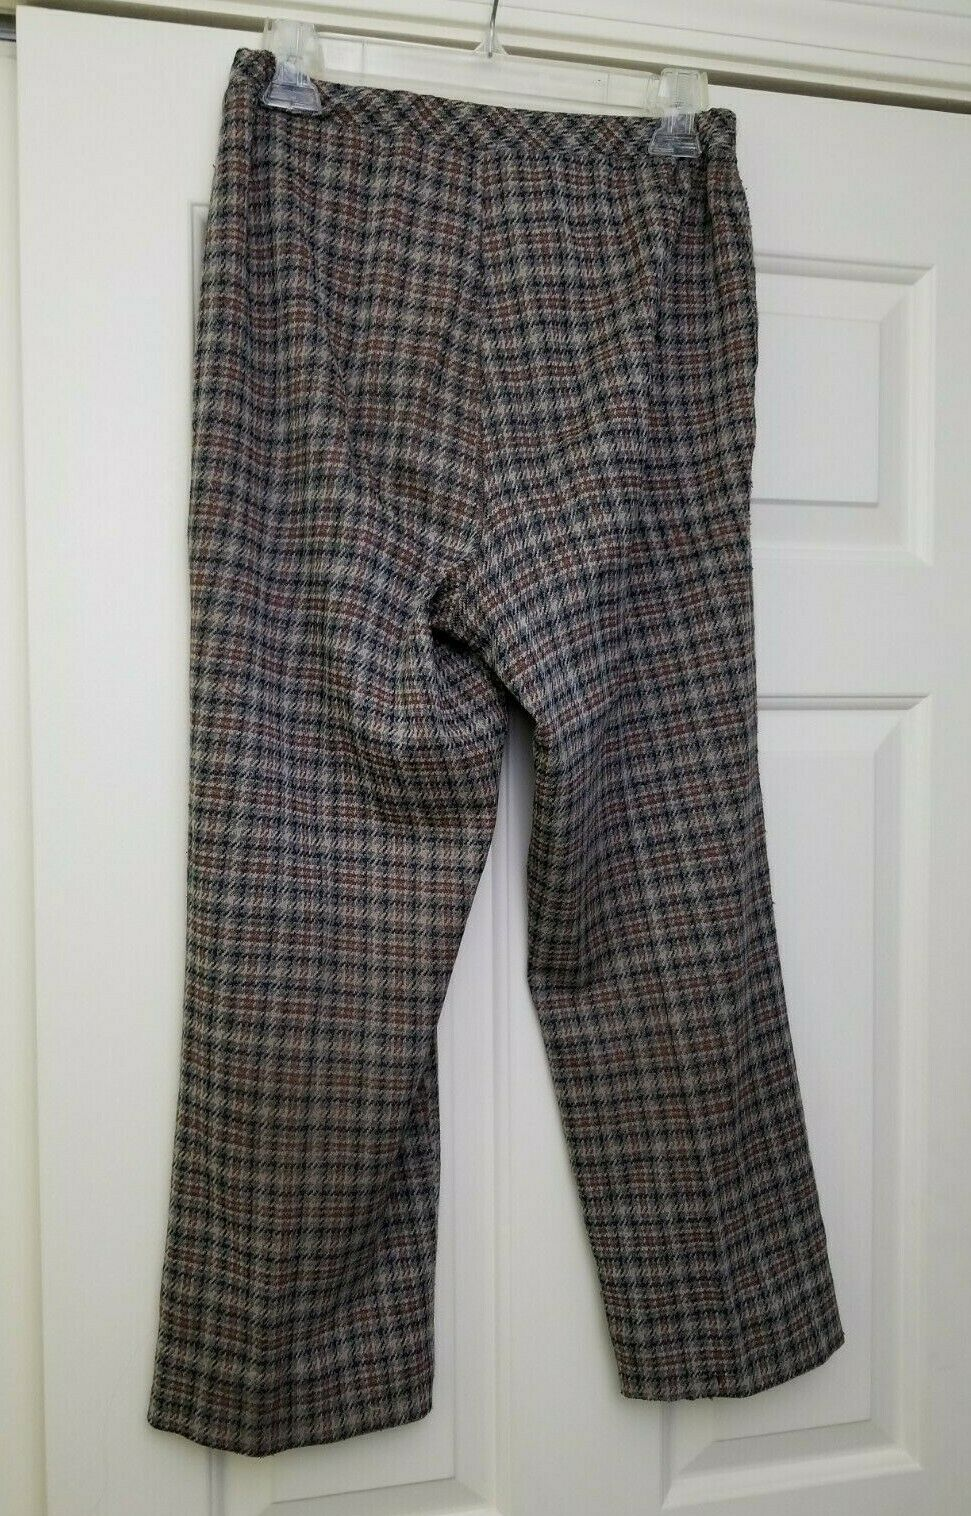 VTG 70s 80s Women's Houndstooth Plaid Pants Brown… - image 4